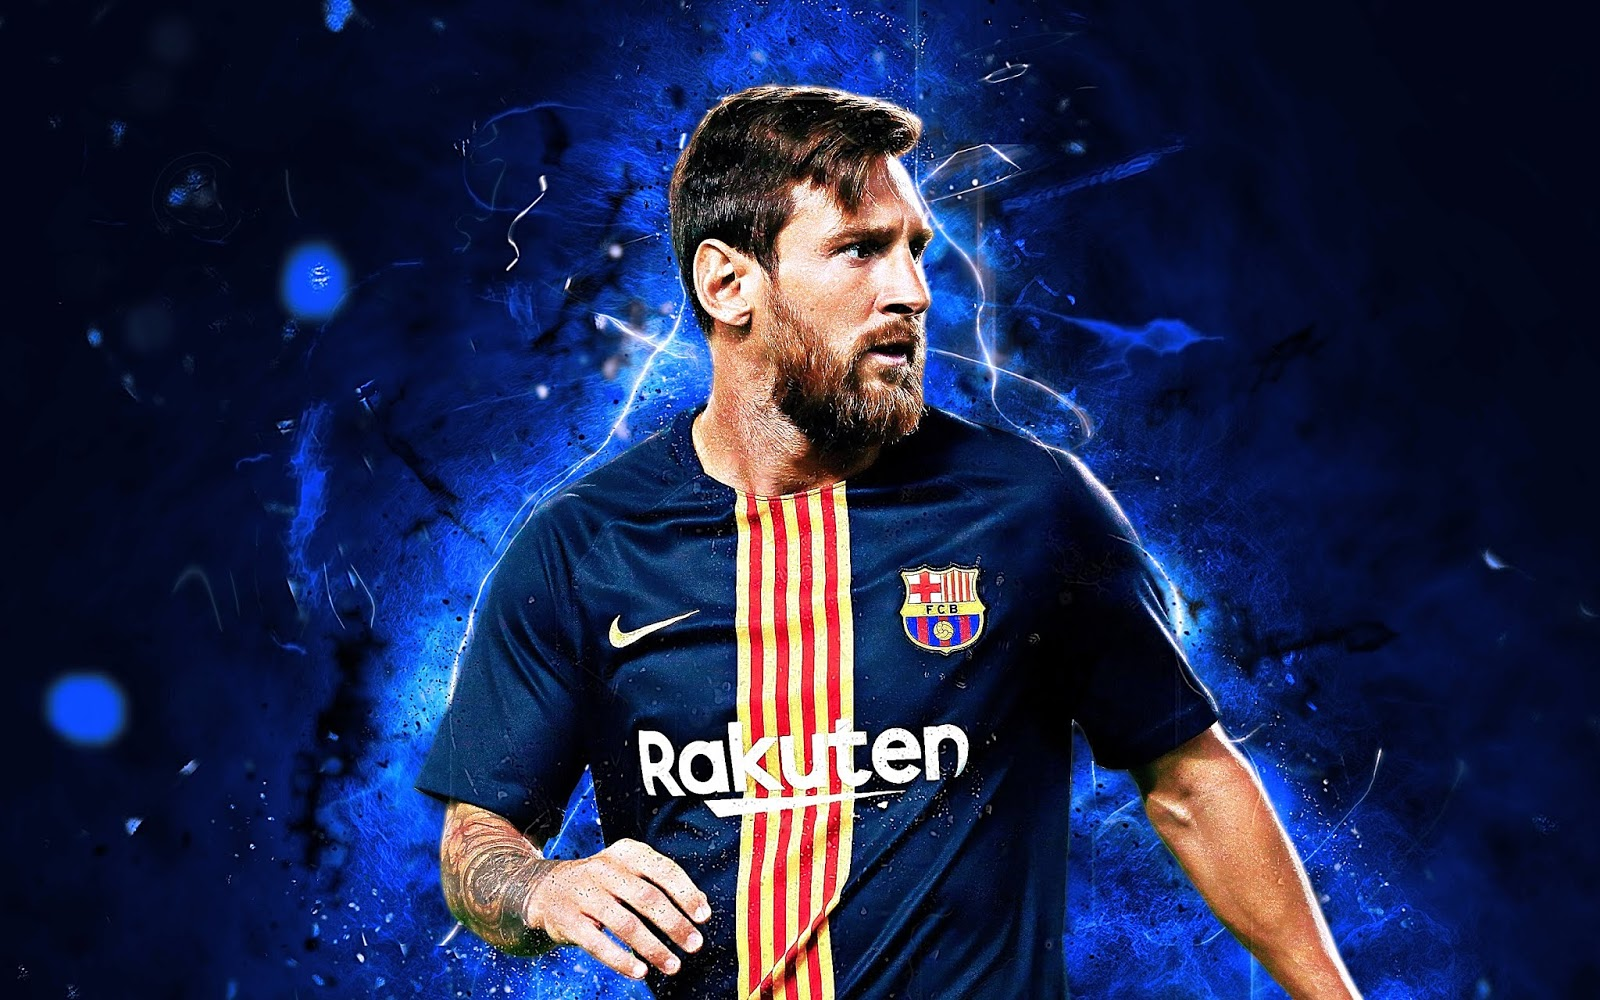 Download 15 latest Messi wallpapers for iPhone and Android 1600x1000